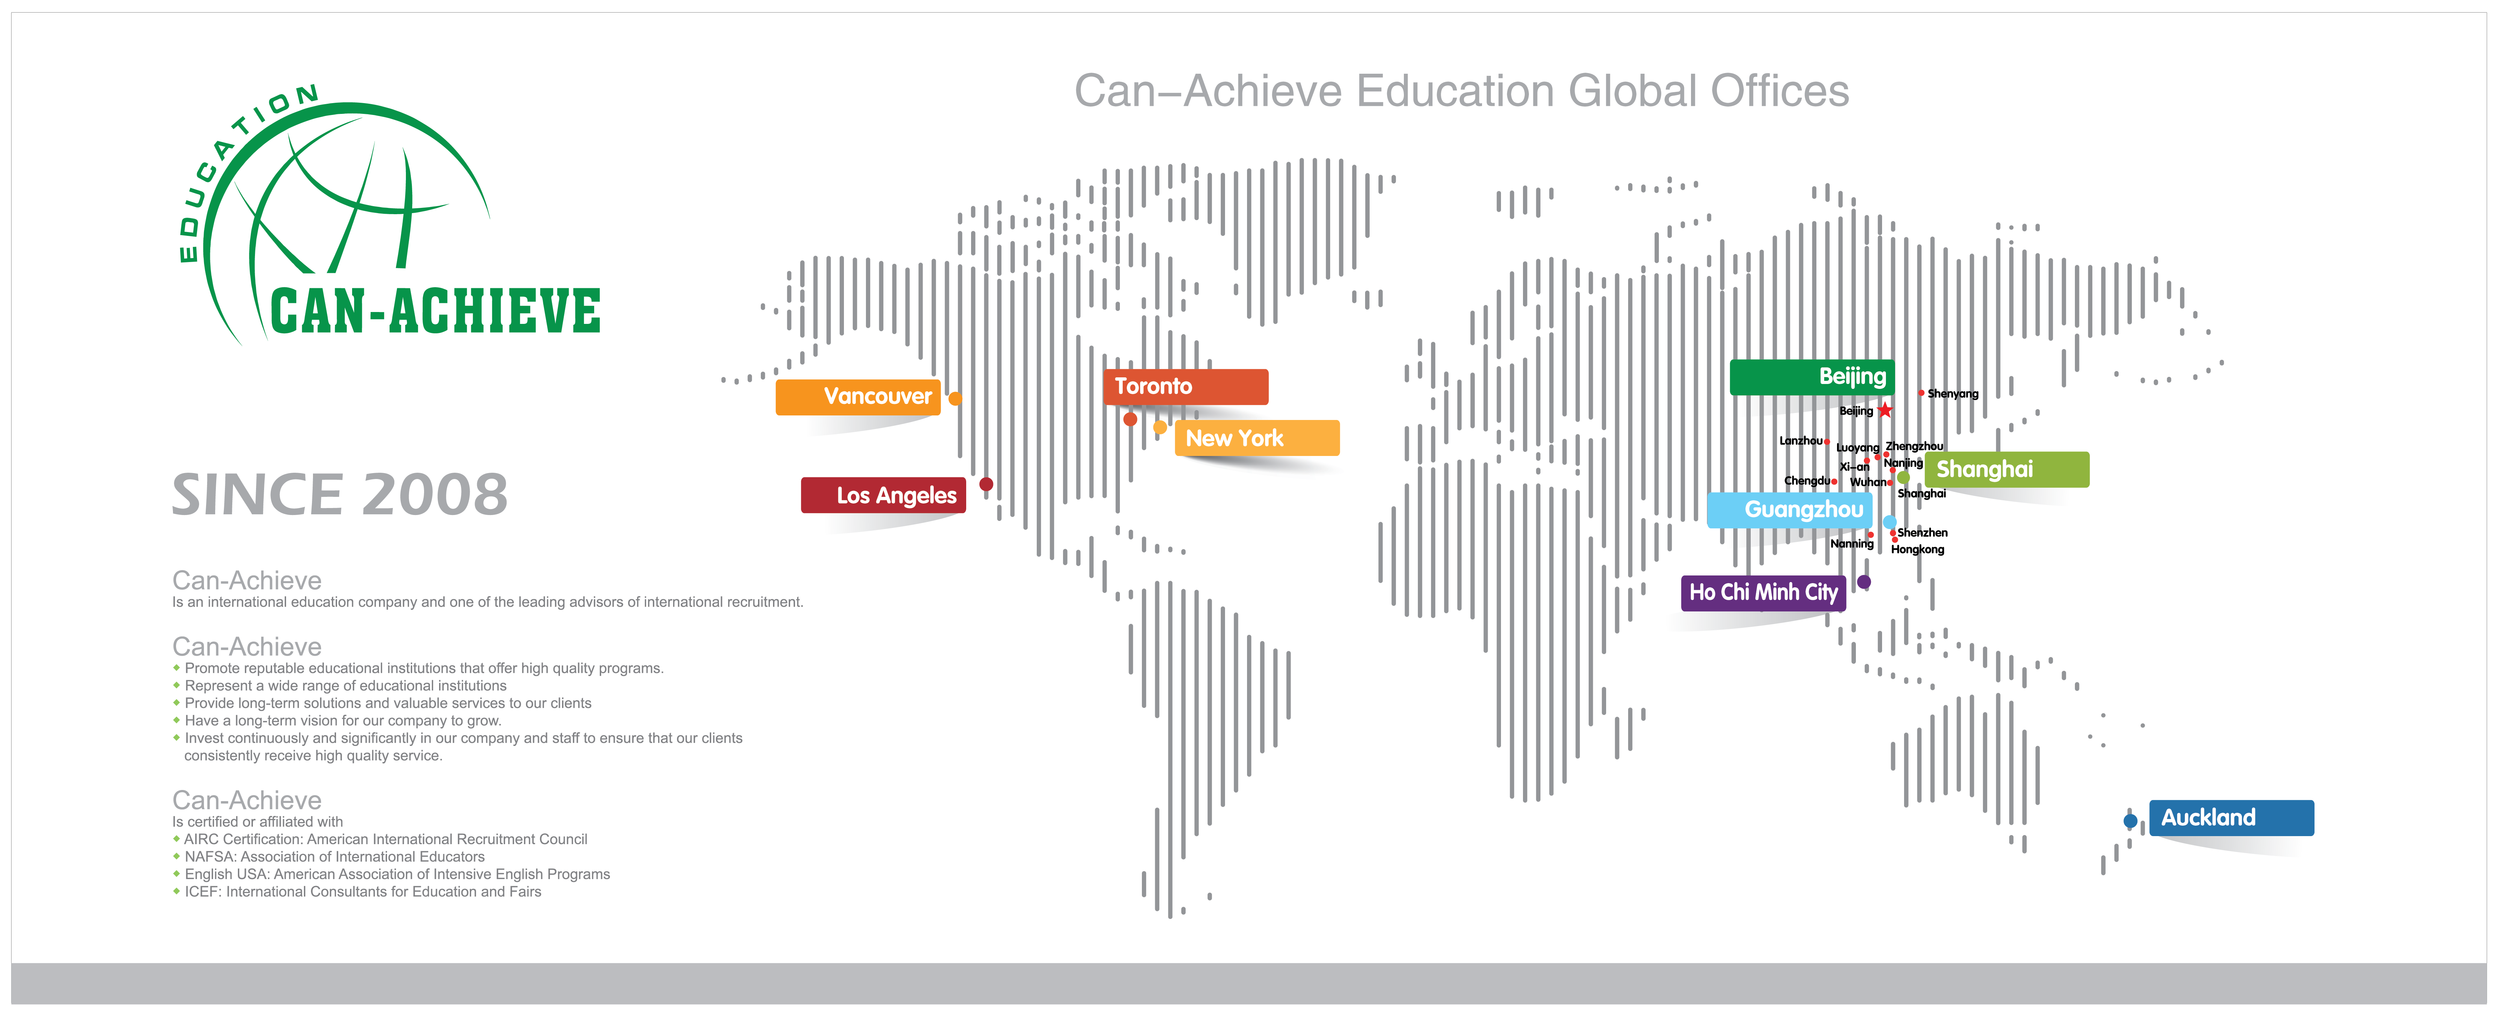 can-achieve education global offices-01.png